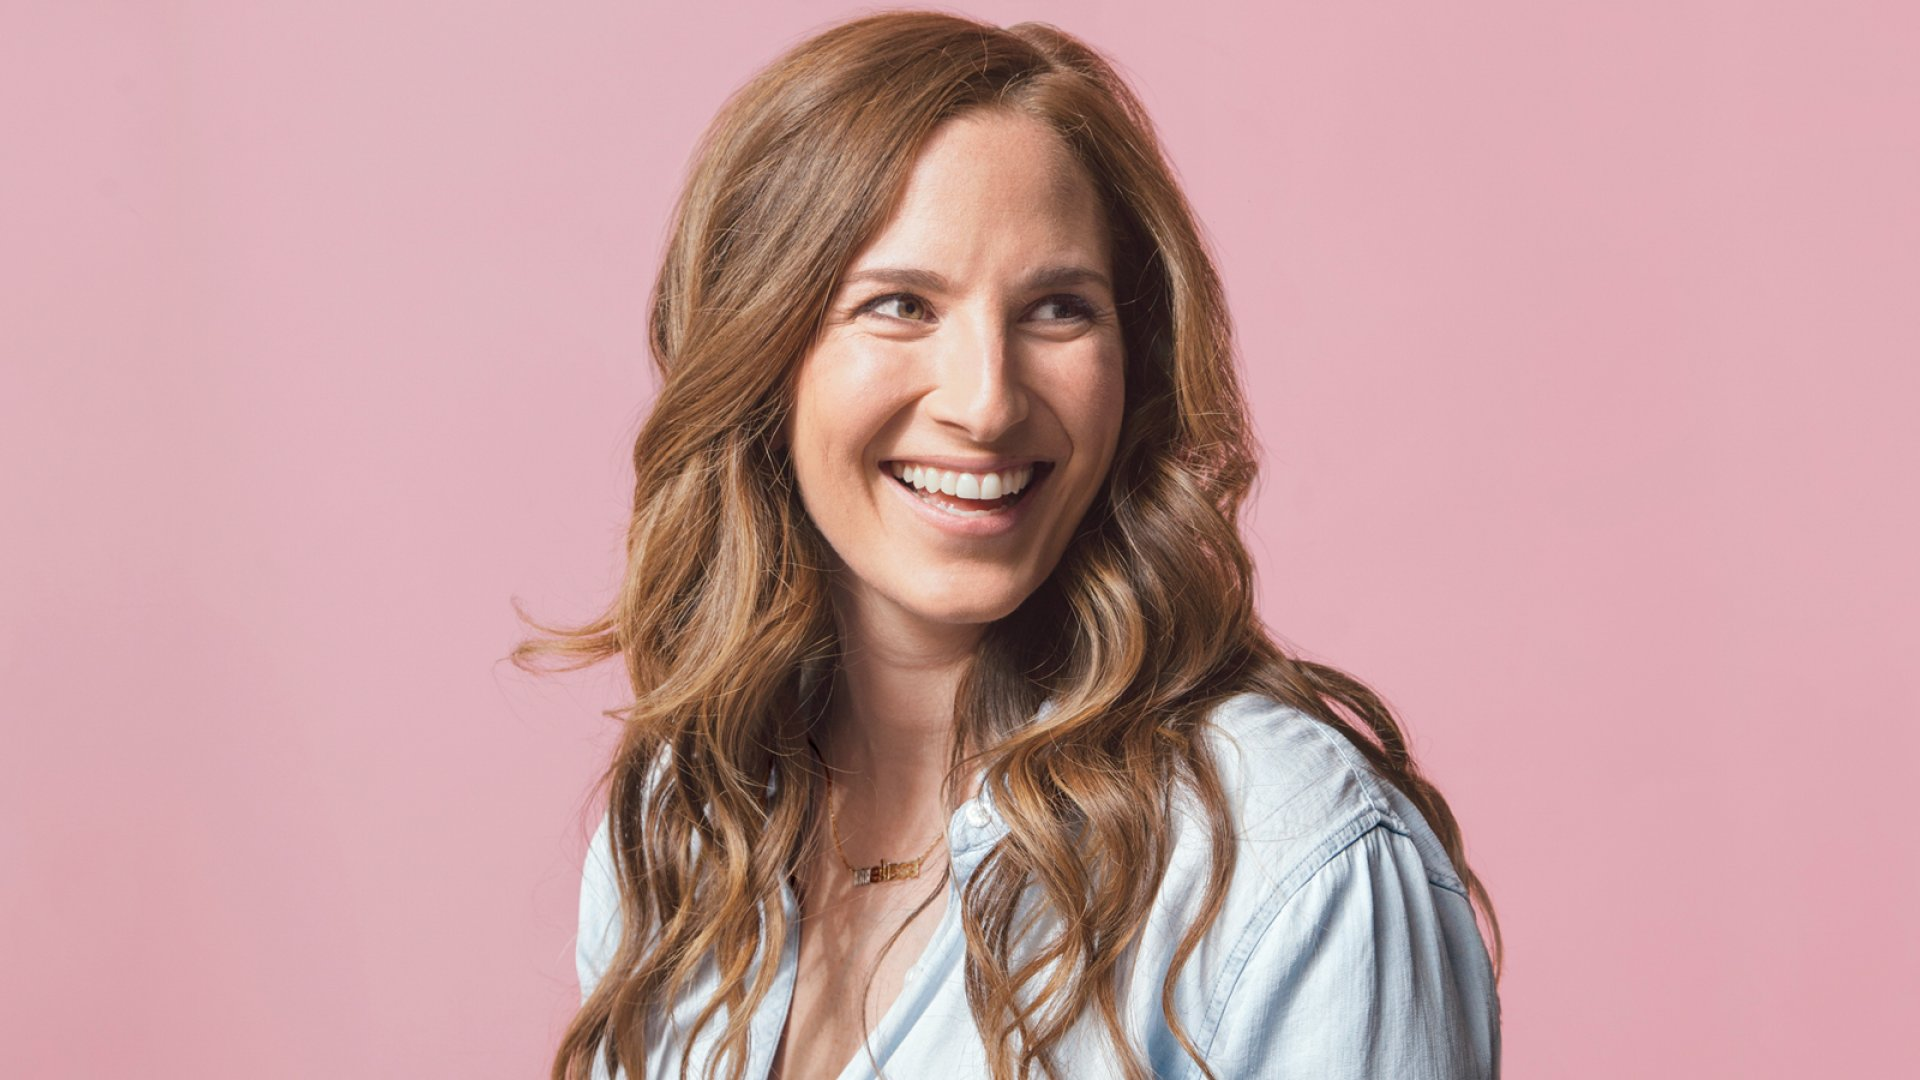 """I can go into any bakery and order one of everything and be like, 'It's for work. I just need to try everything,'"" says Melissa Ben-Ishay, whose New York City company was founded in 2009. It now has 14 area stores and a national e-commerce operation."